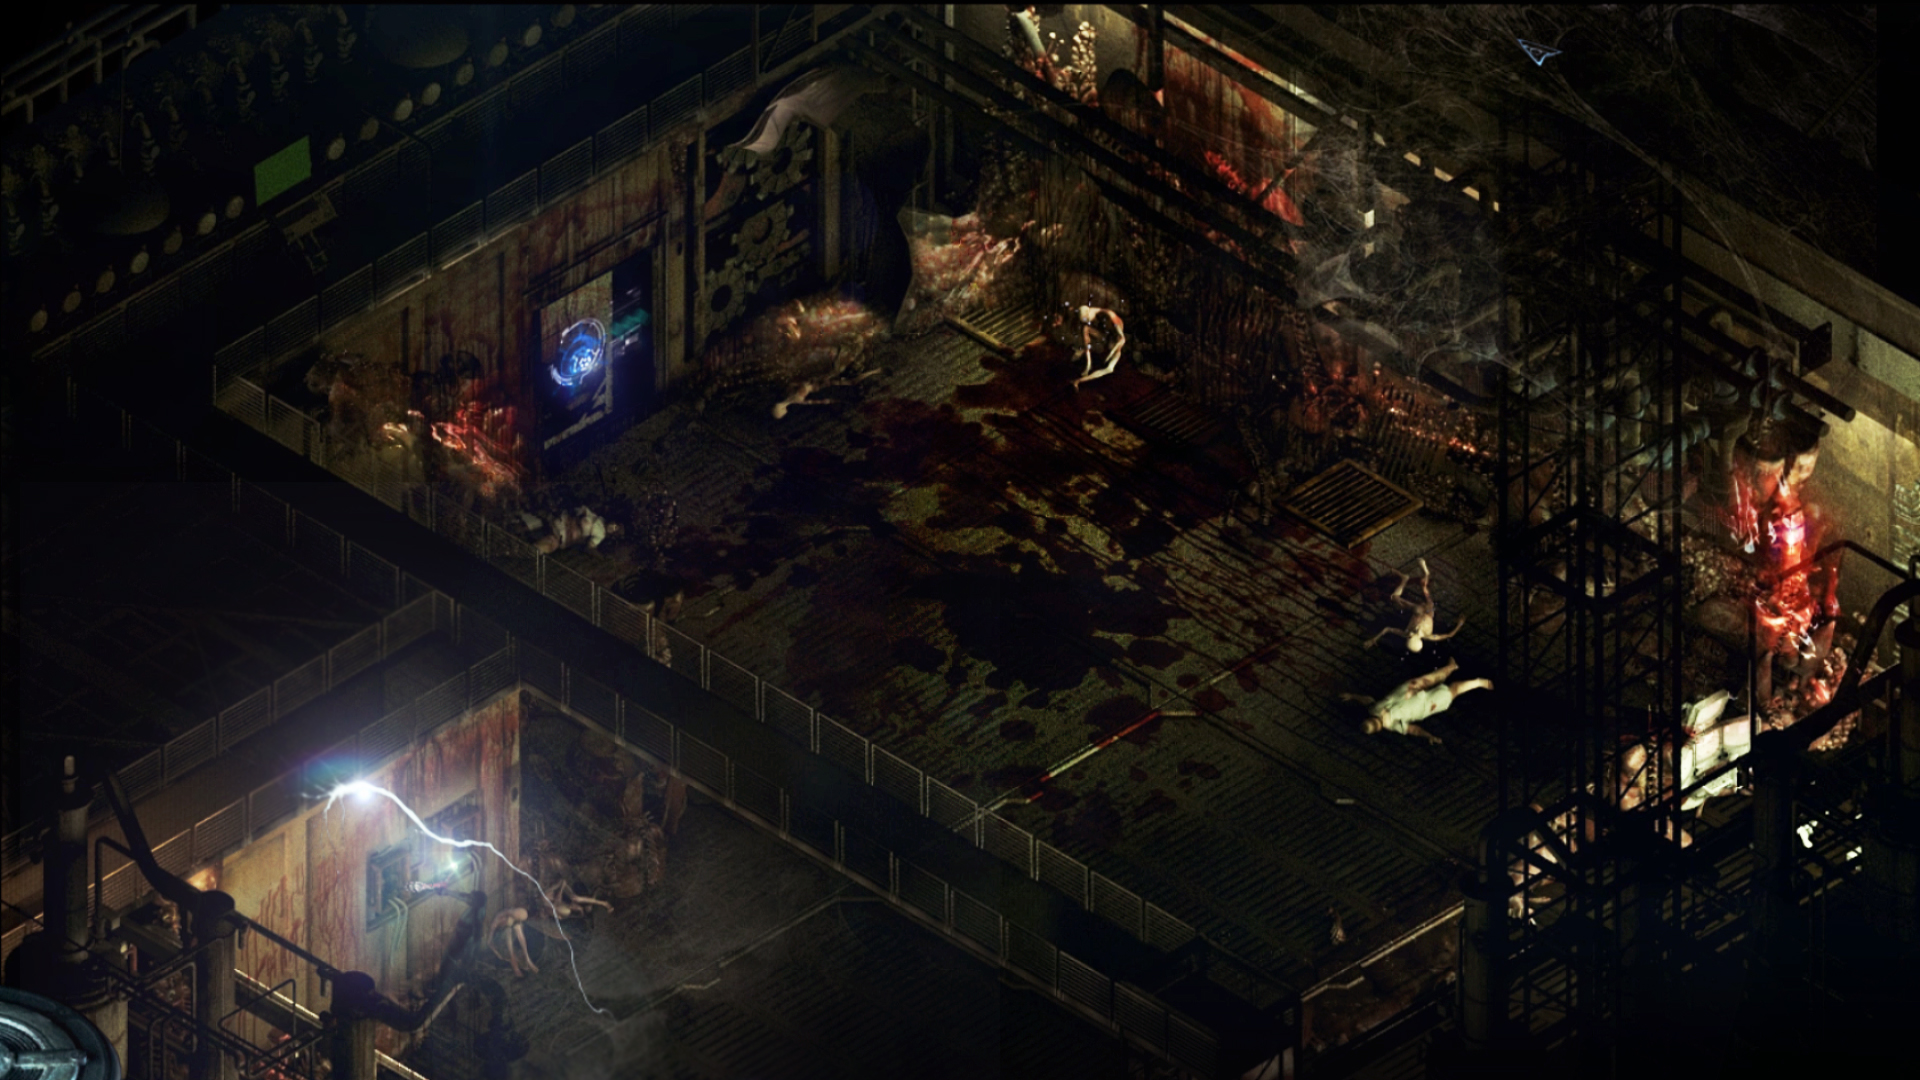 2D Isometric Sci Fi Horror Game Stasis Will Finally Be